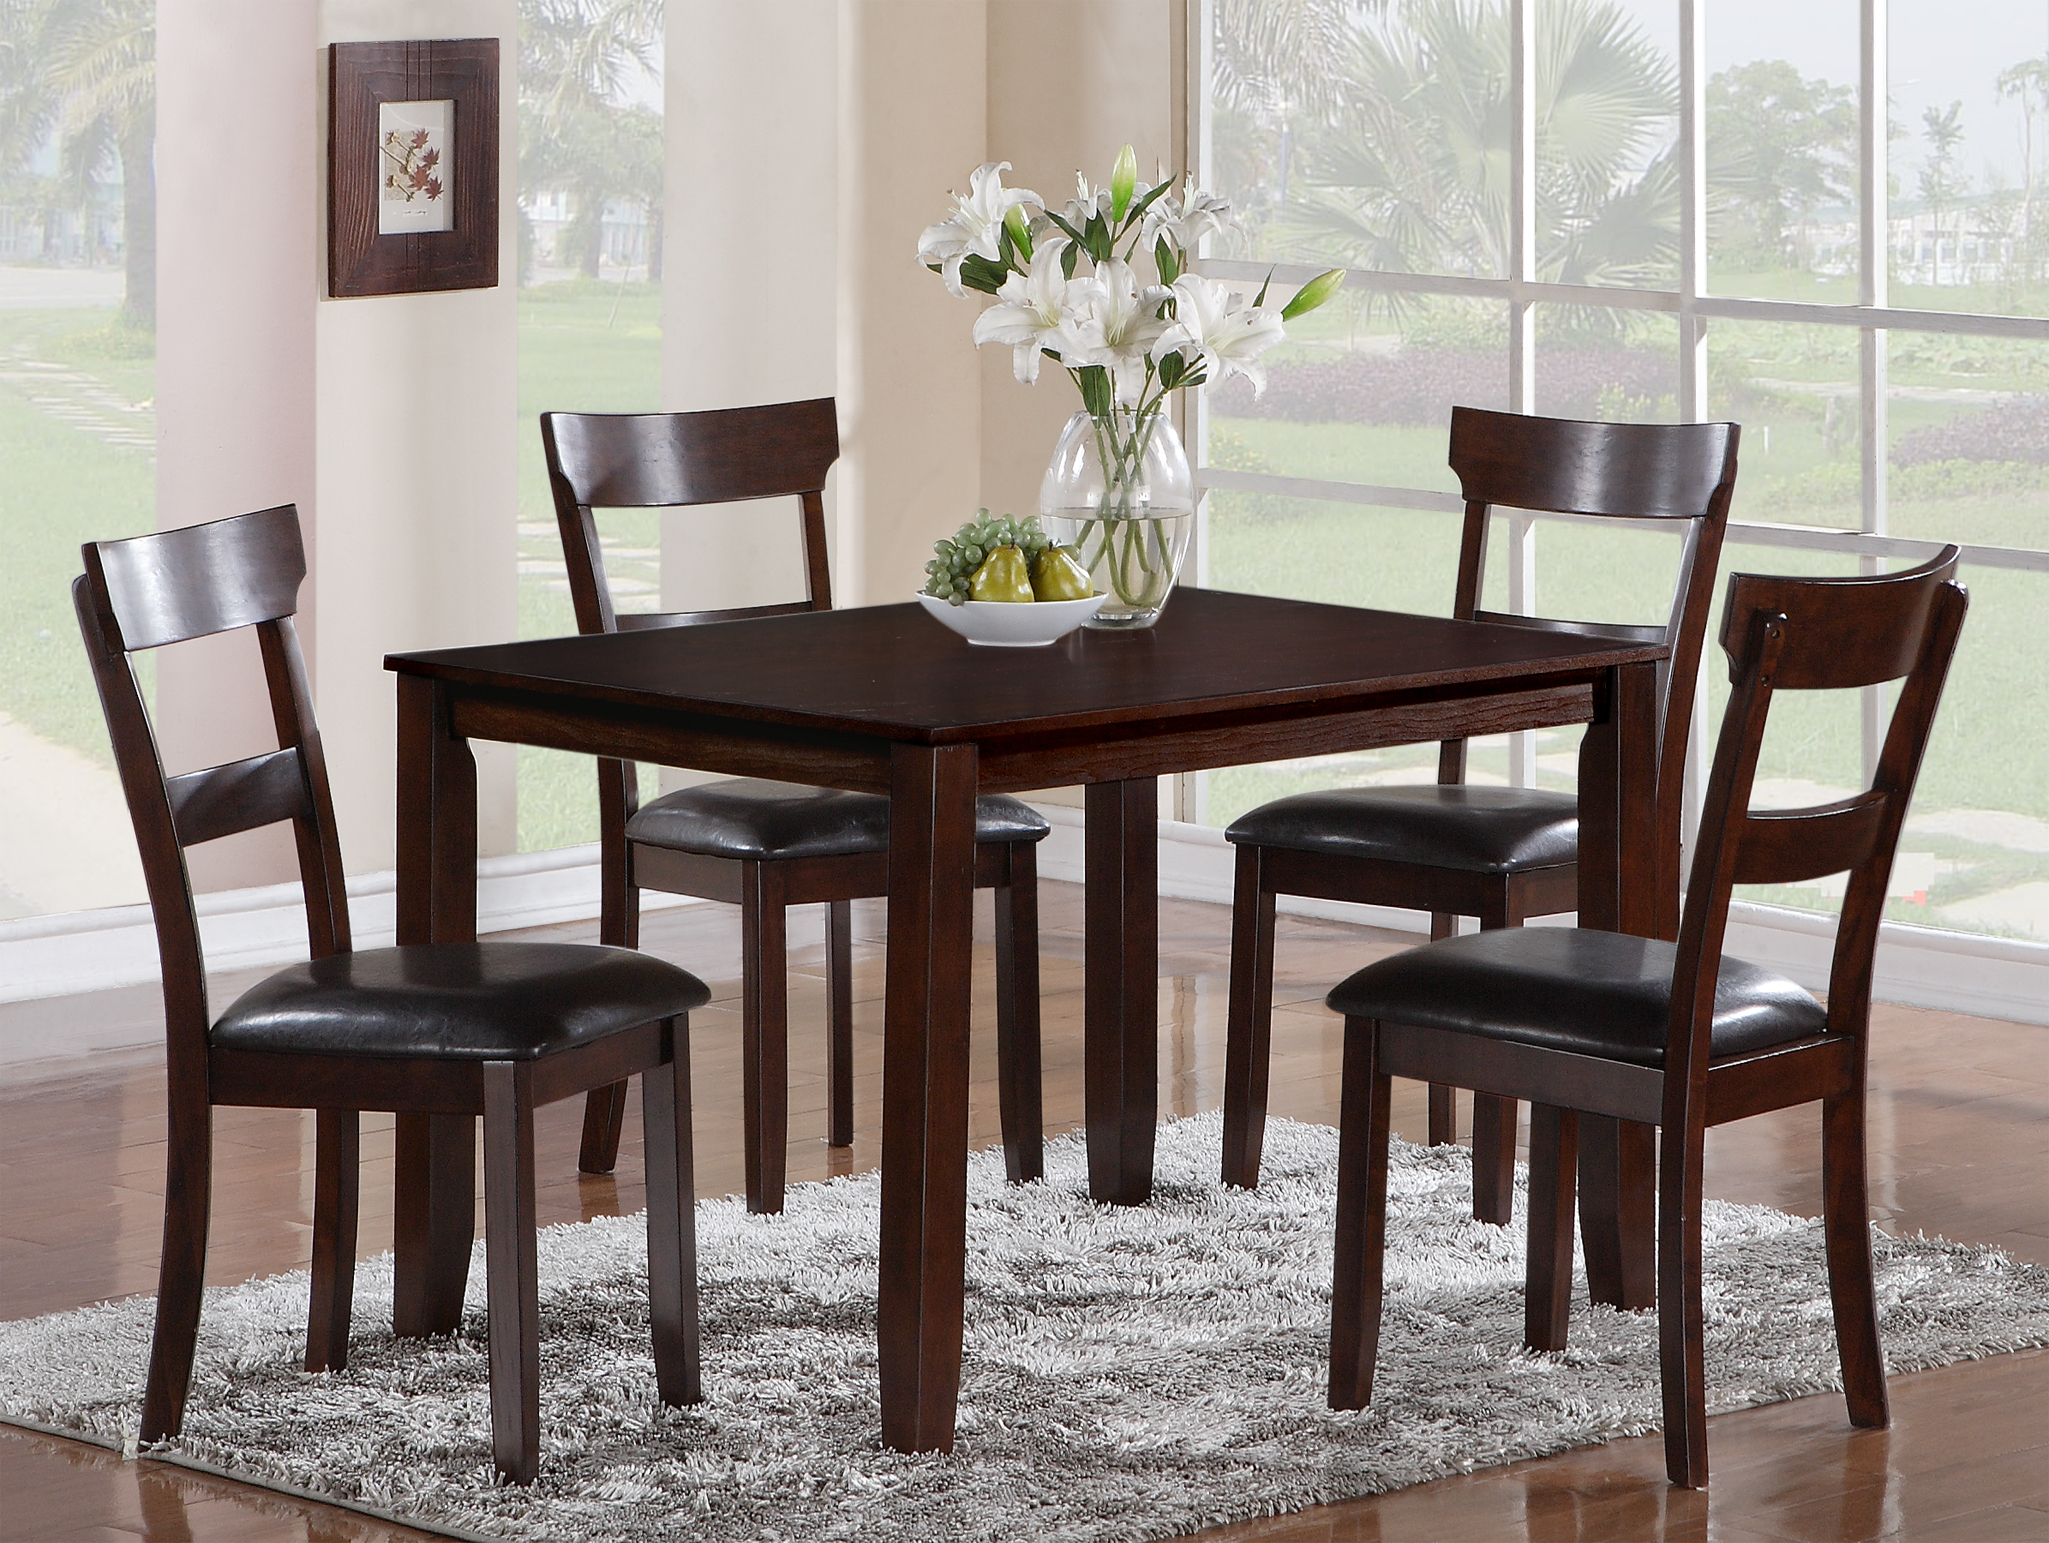 Henderson Dining Collection For Best And Newest Cargo 5 Piece Dining Sets (View 7 of 20)